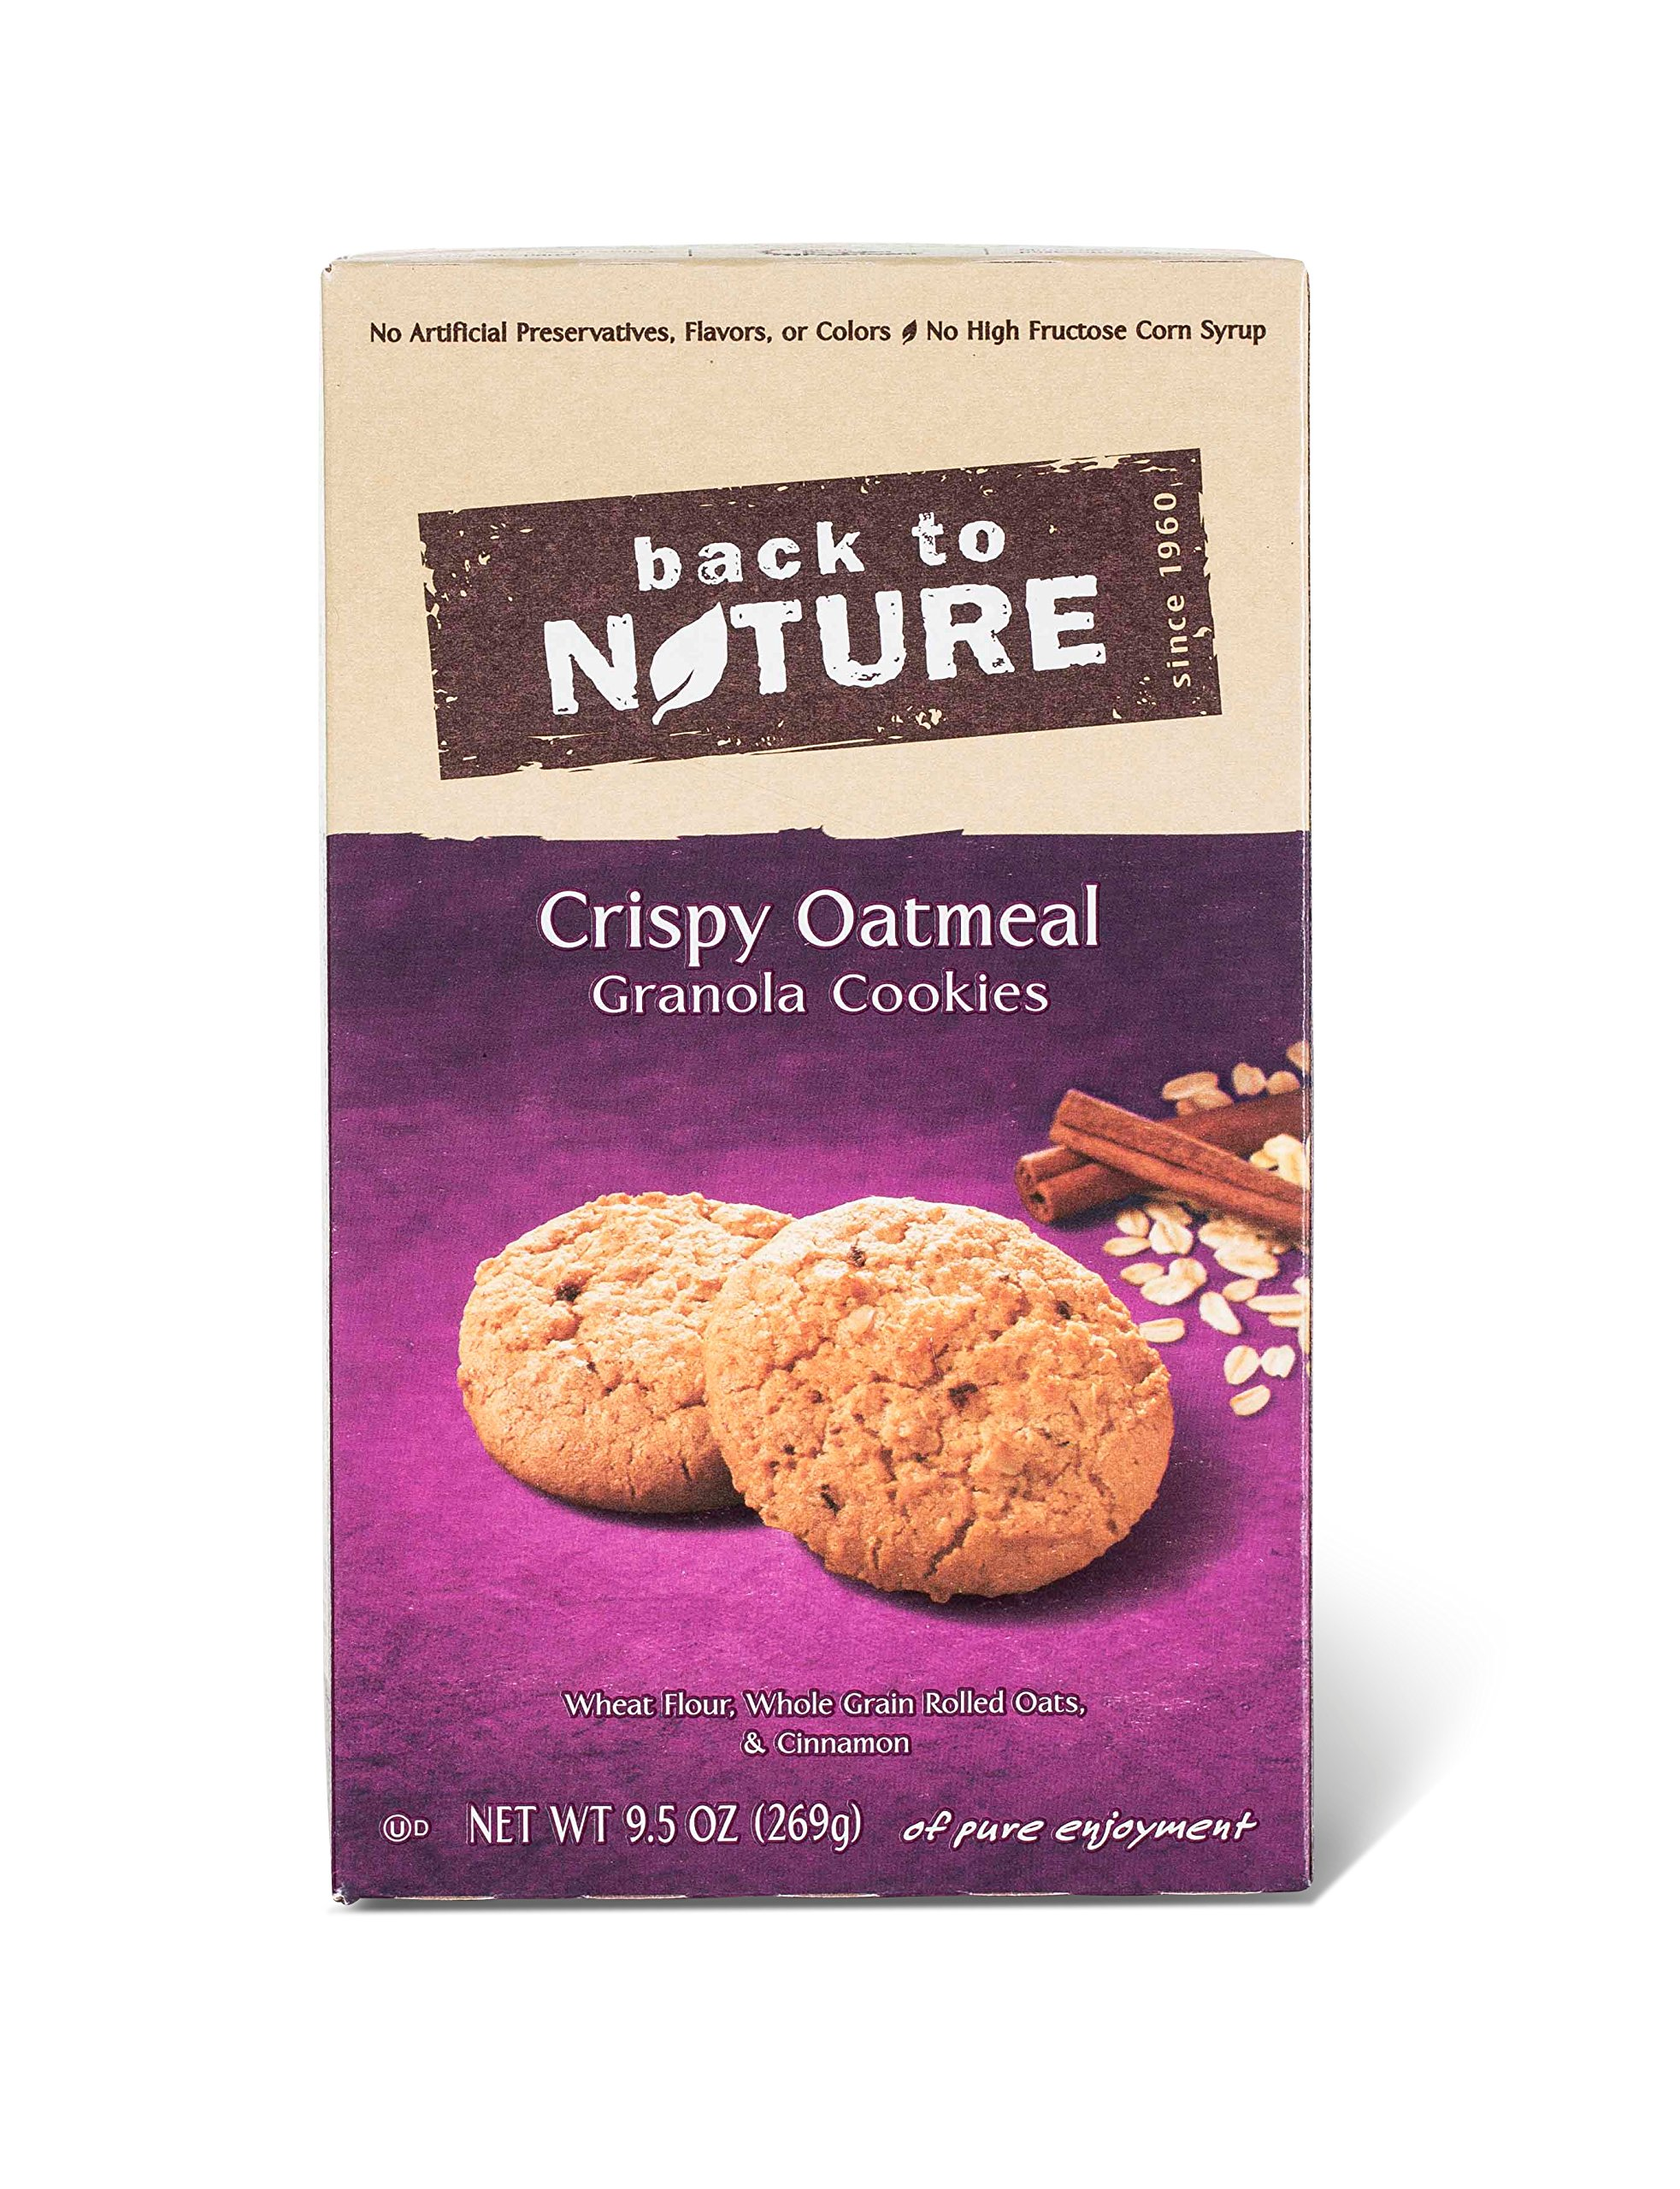 Back to Nature Crispy Oatmeal Cookies, 9.5-Ounce Boxes (Pack of 12)